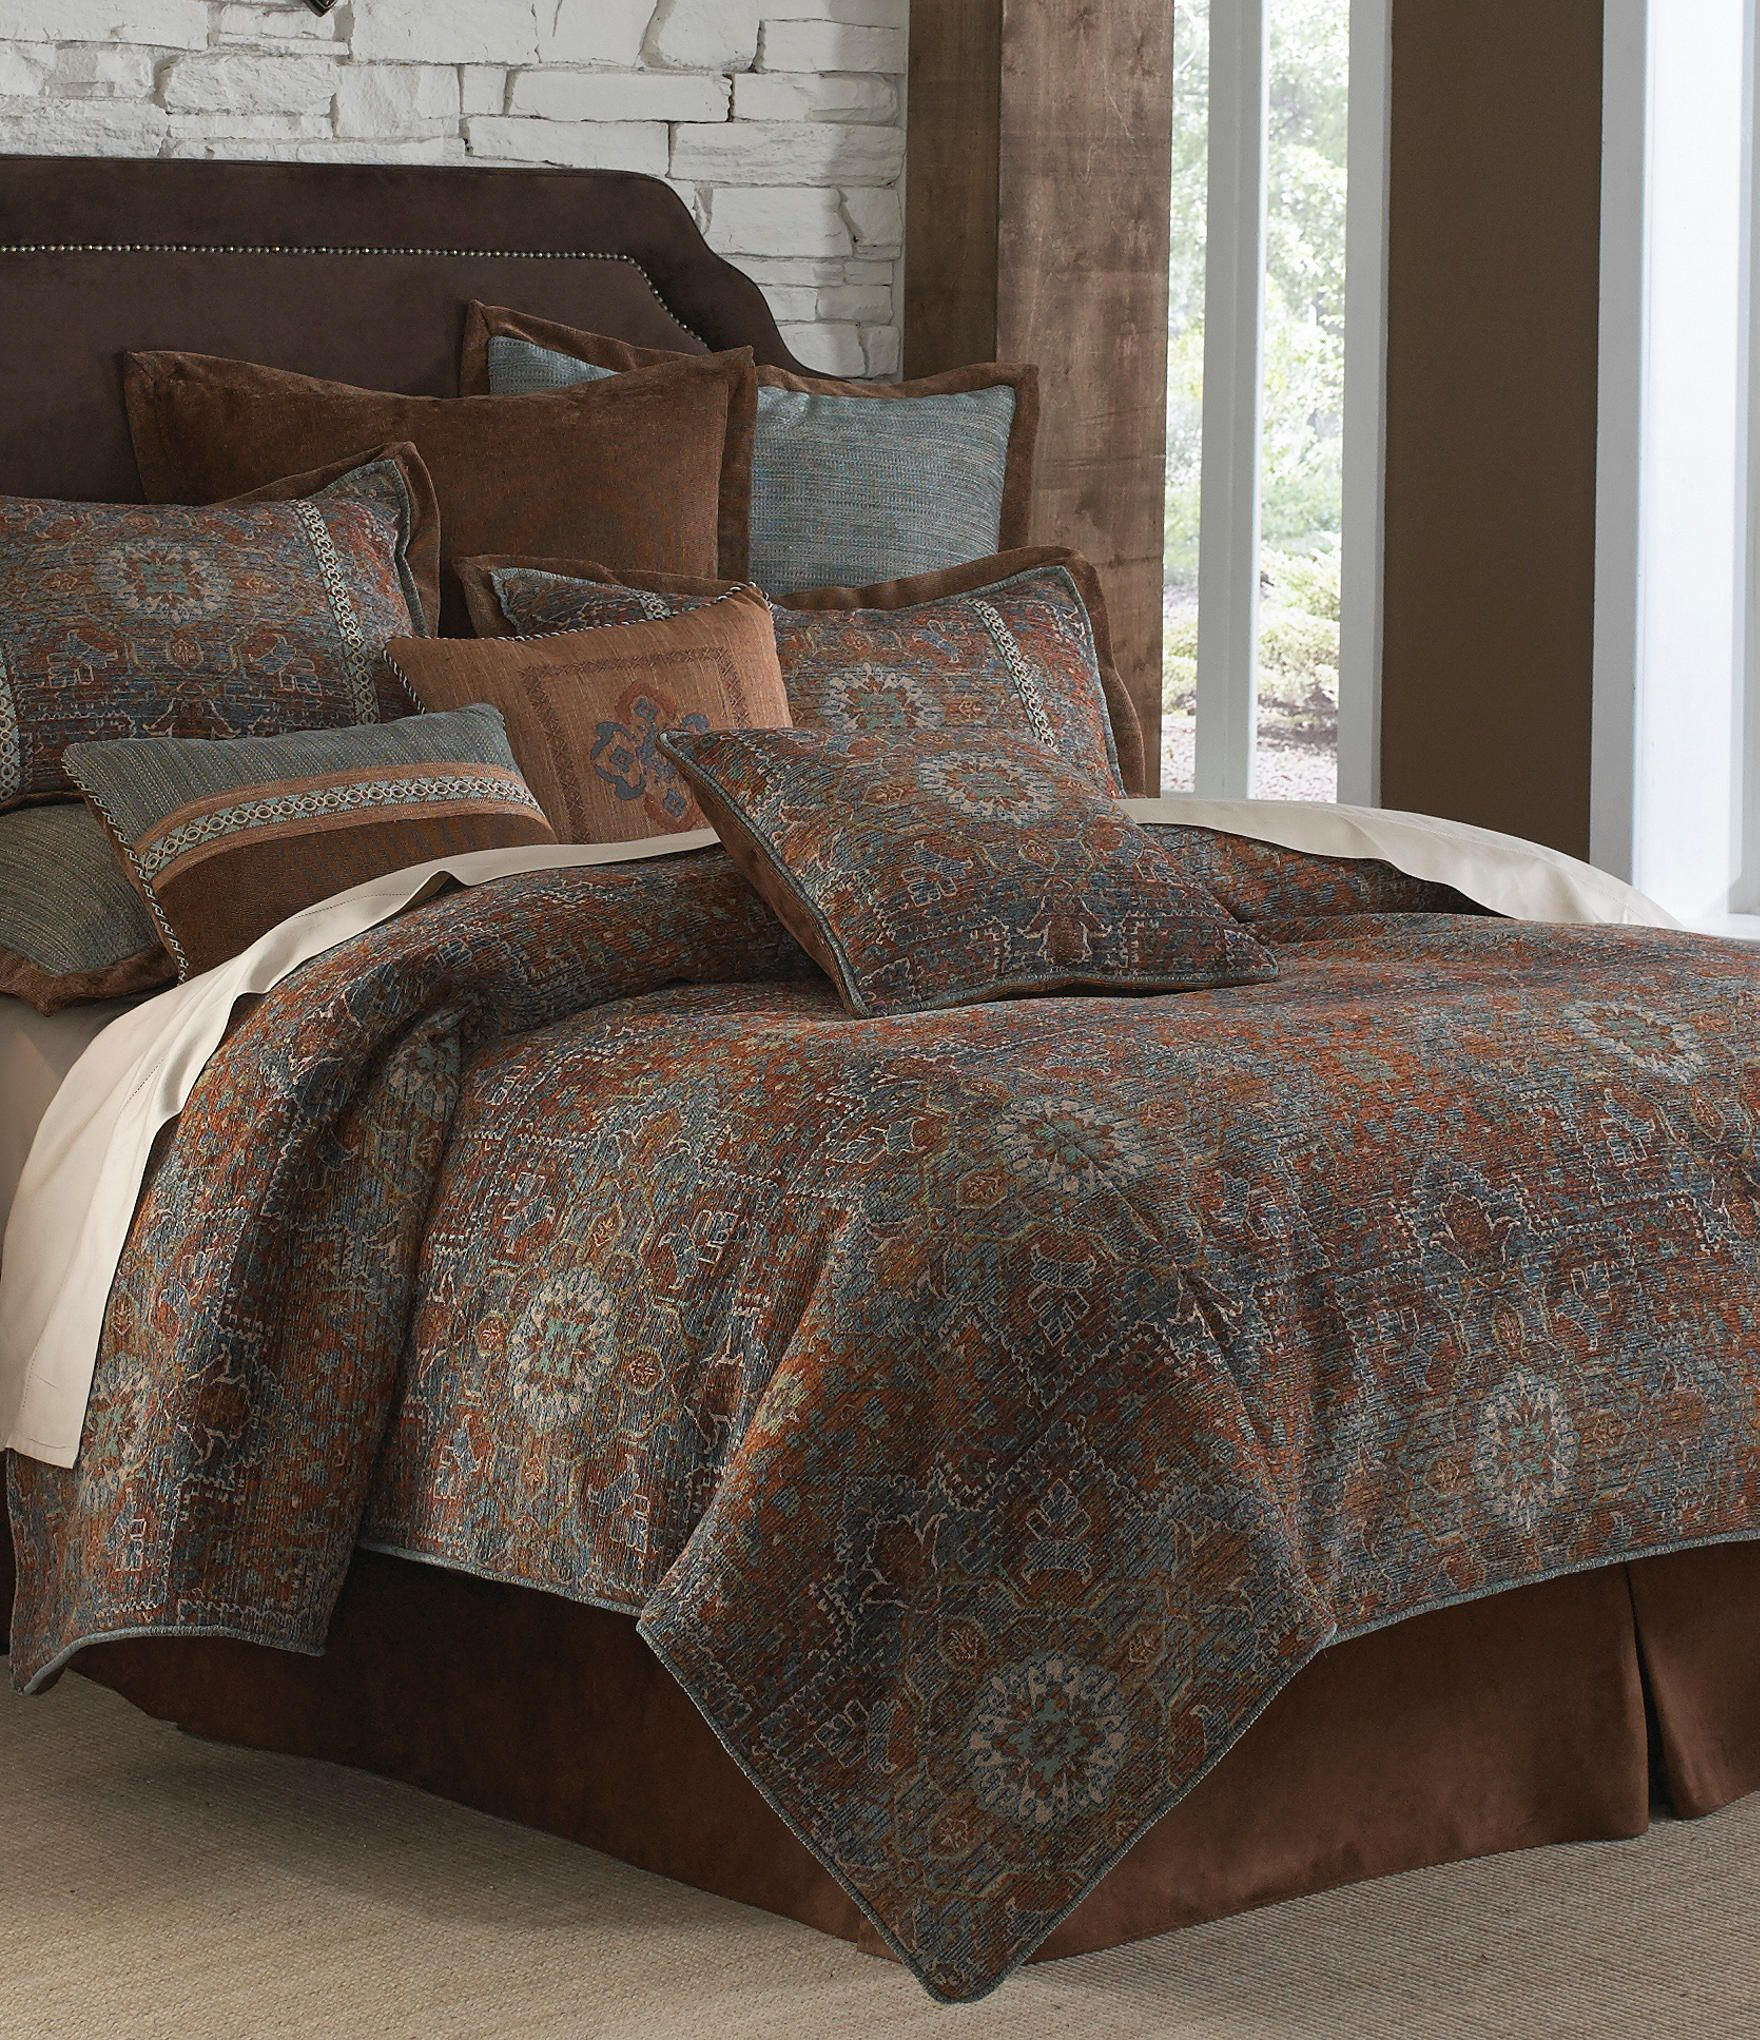 Veratex Dakota Comforter Set | Dillards | Future Home ...